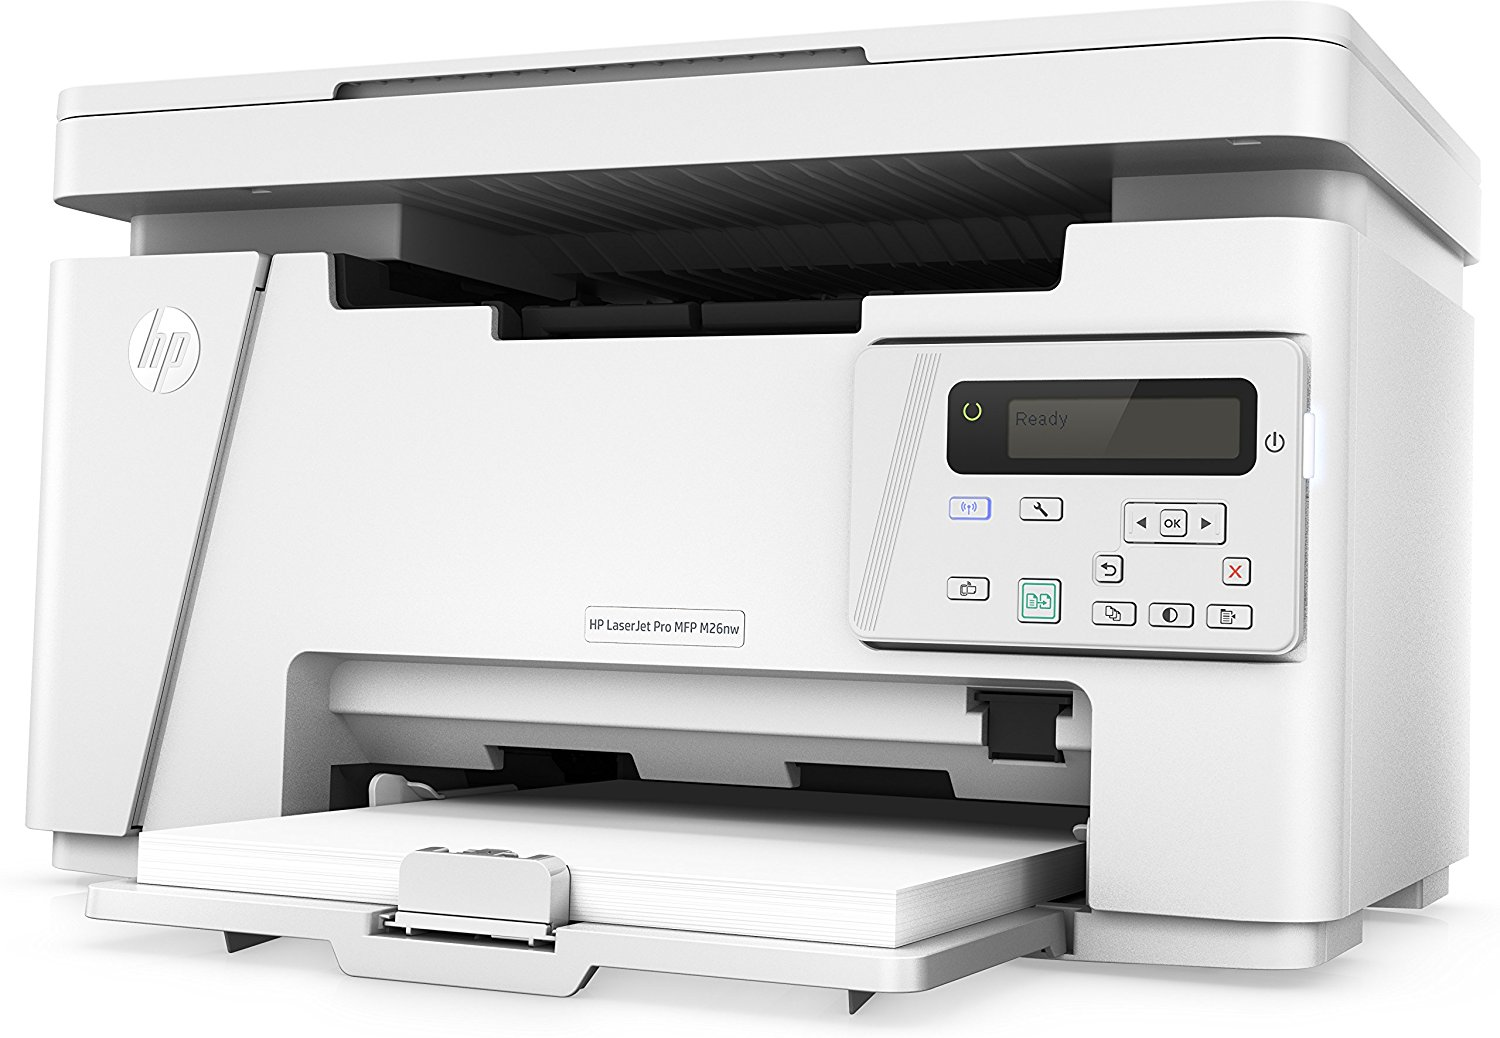 ▷ HP LaserJet Pro MFP M26nw | Pros, Contras & Opiniones